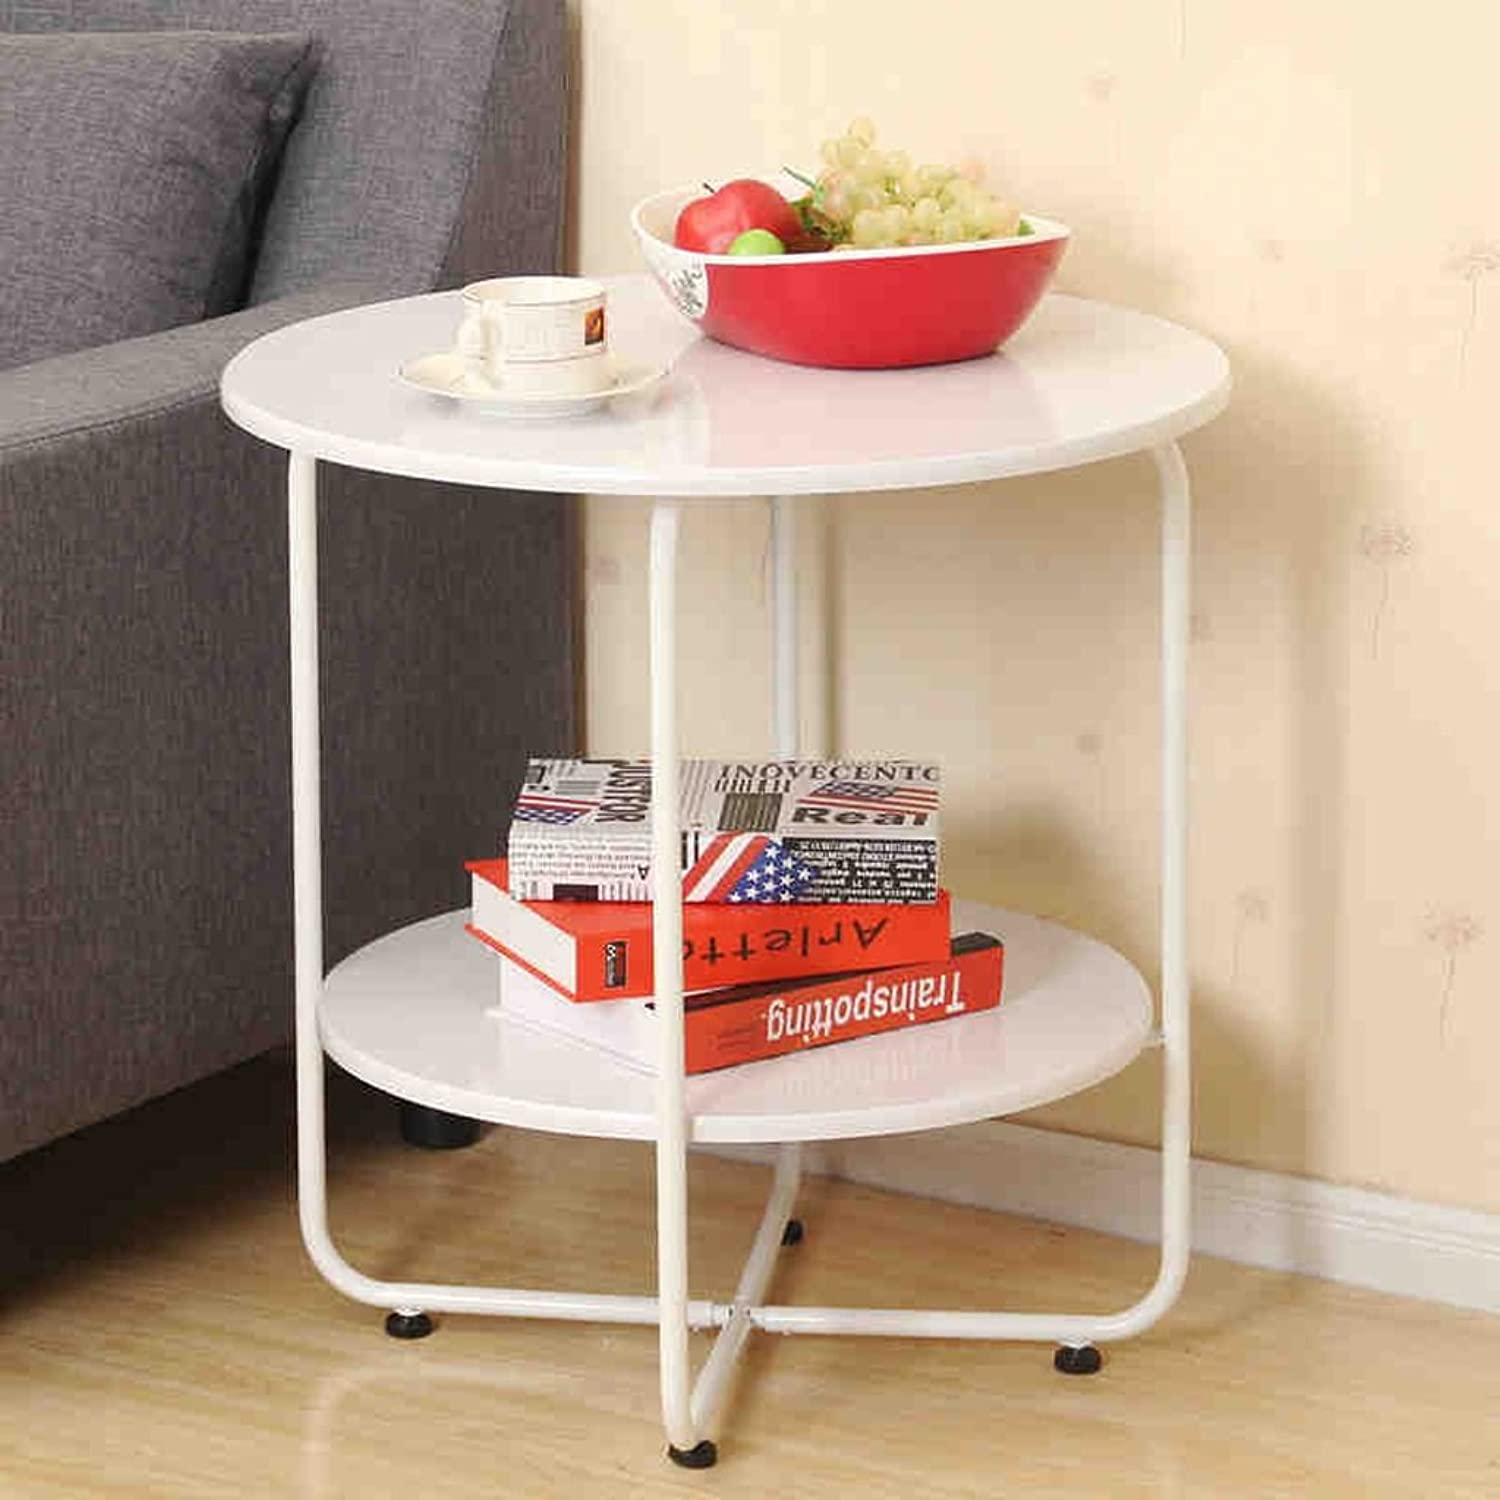 Sofa Side Table Living Room Small Round Table Bed Minimalist Mobile Small Coffee Table 606060.5cm (color   White)